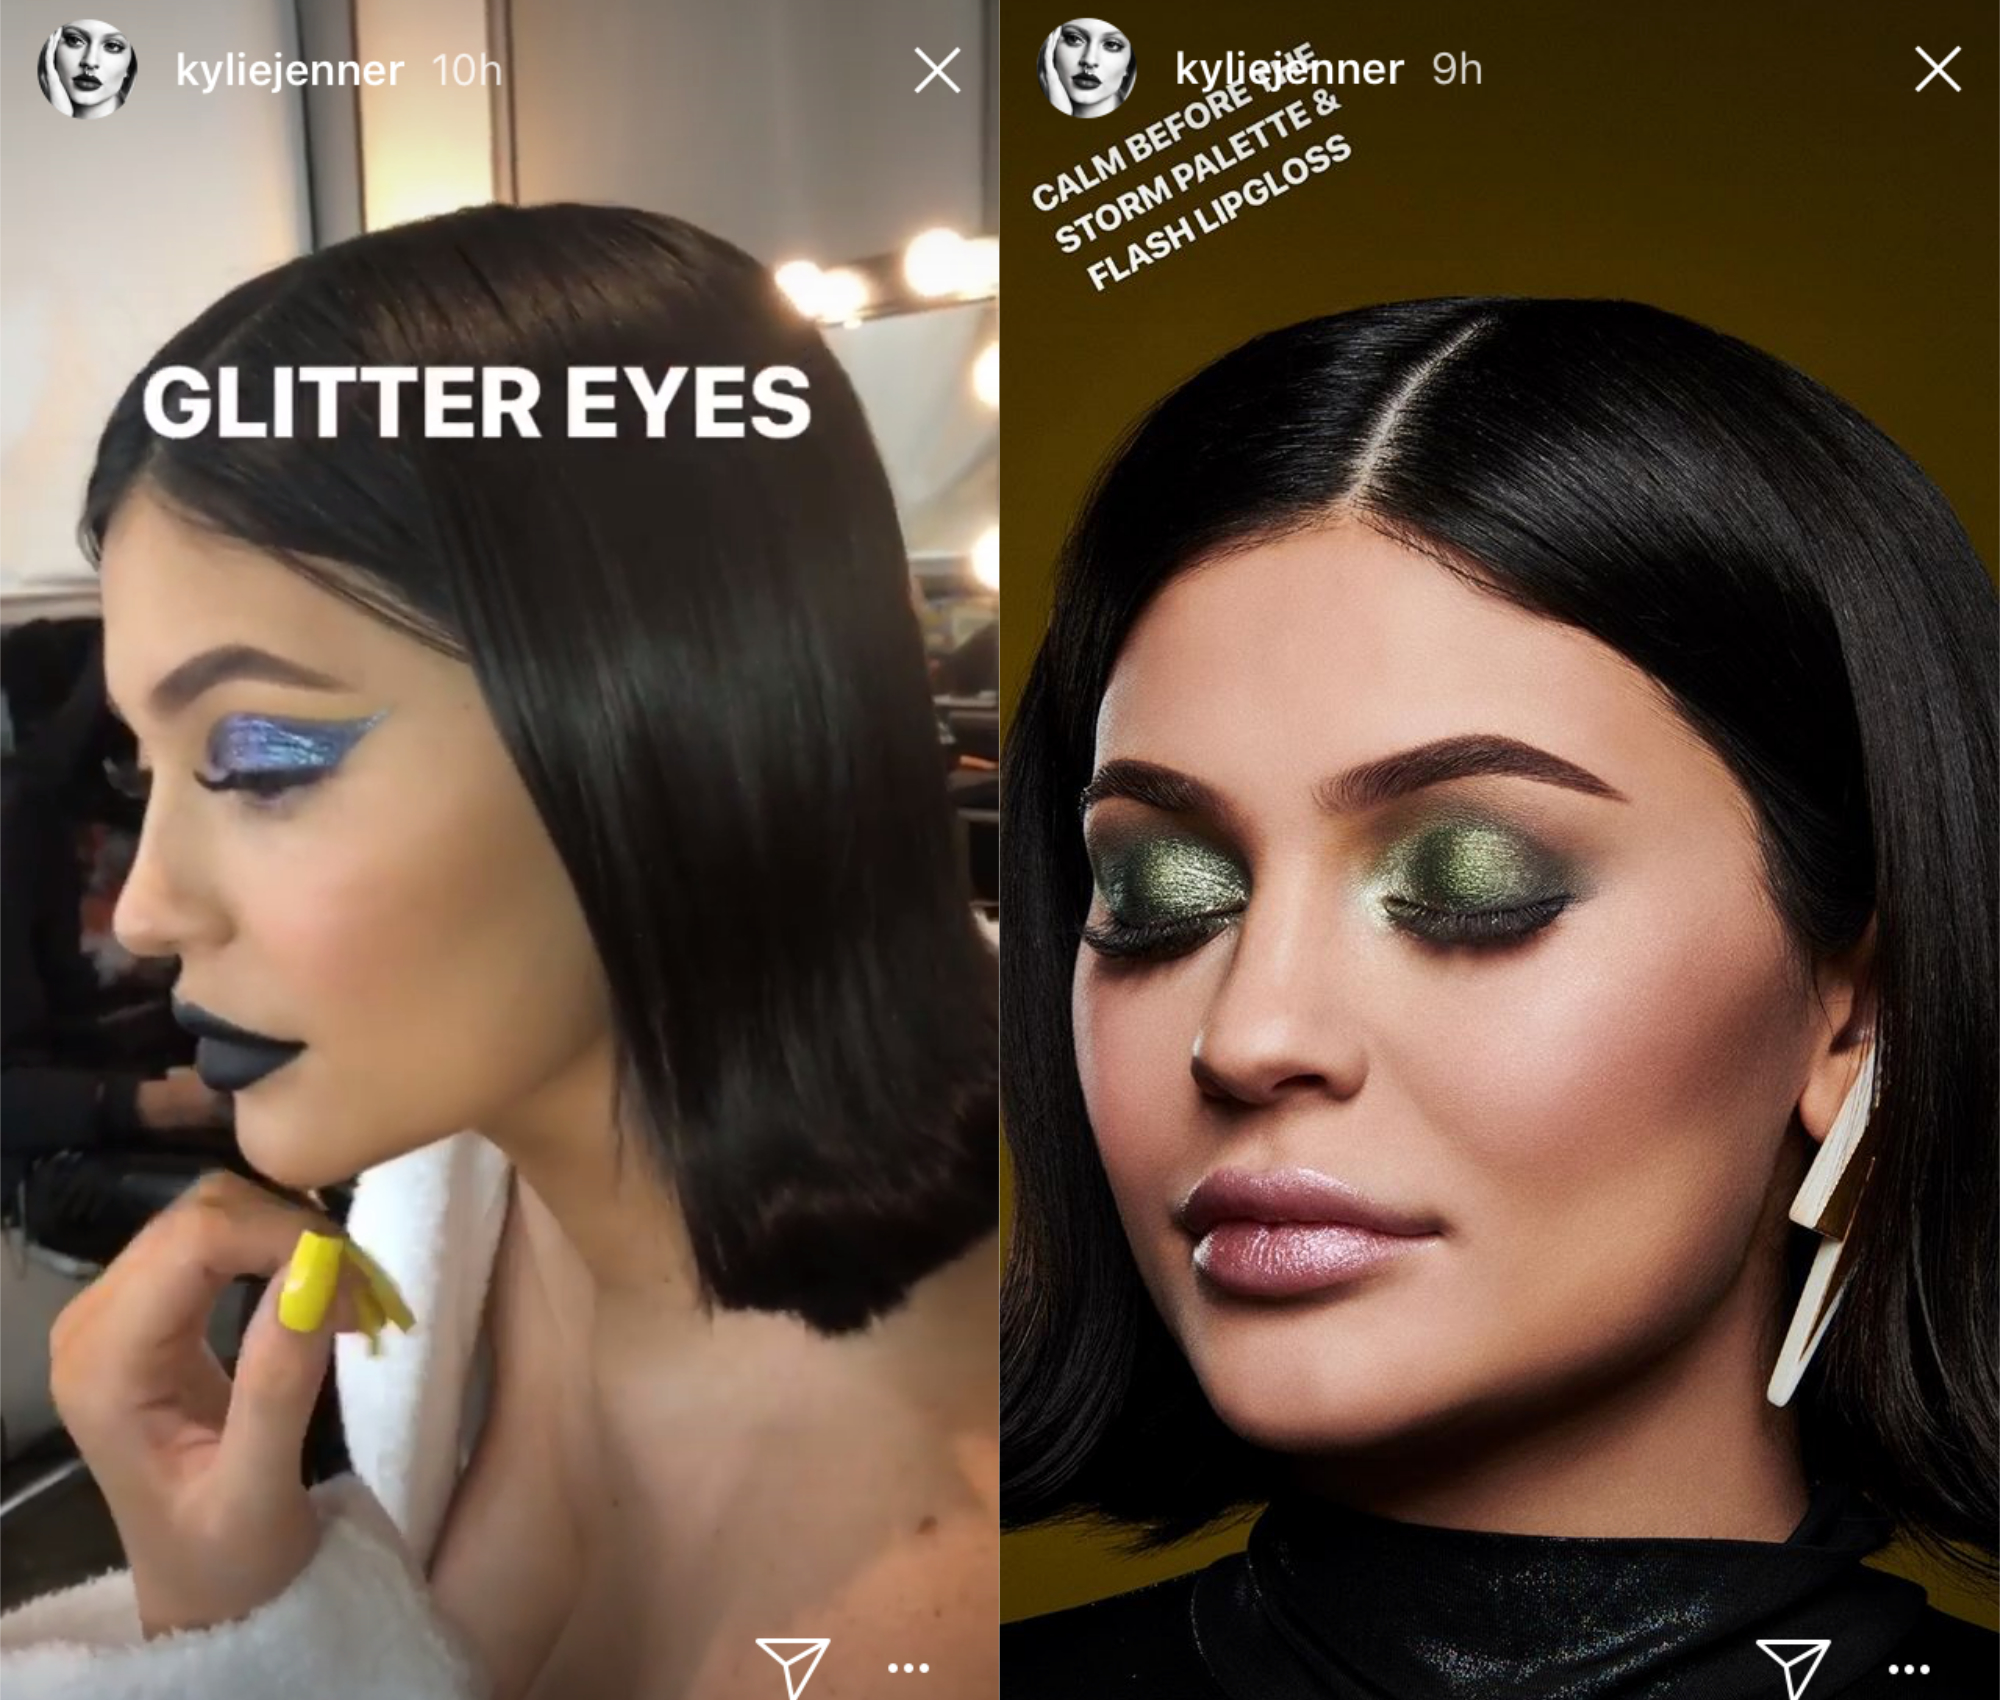 7 kylie jenner  kylie  weather collection  palette